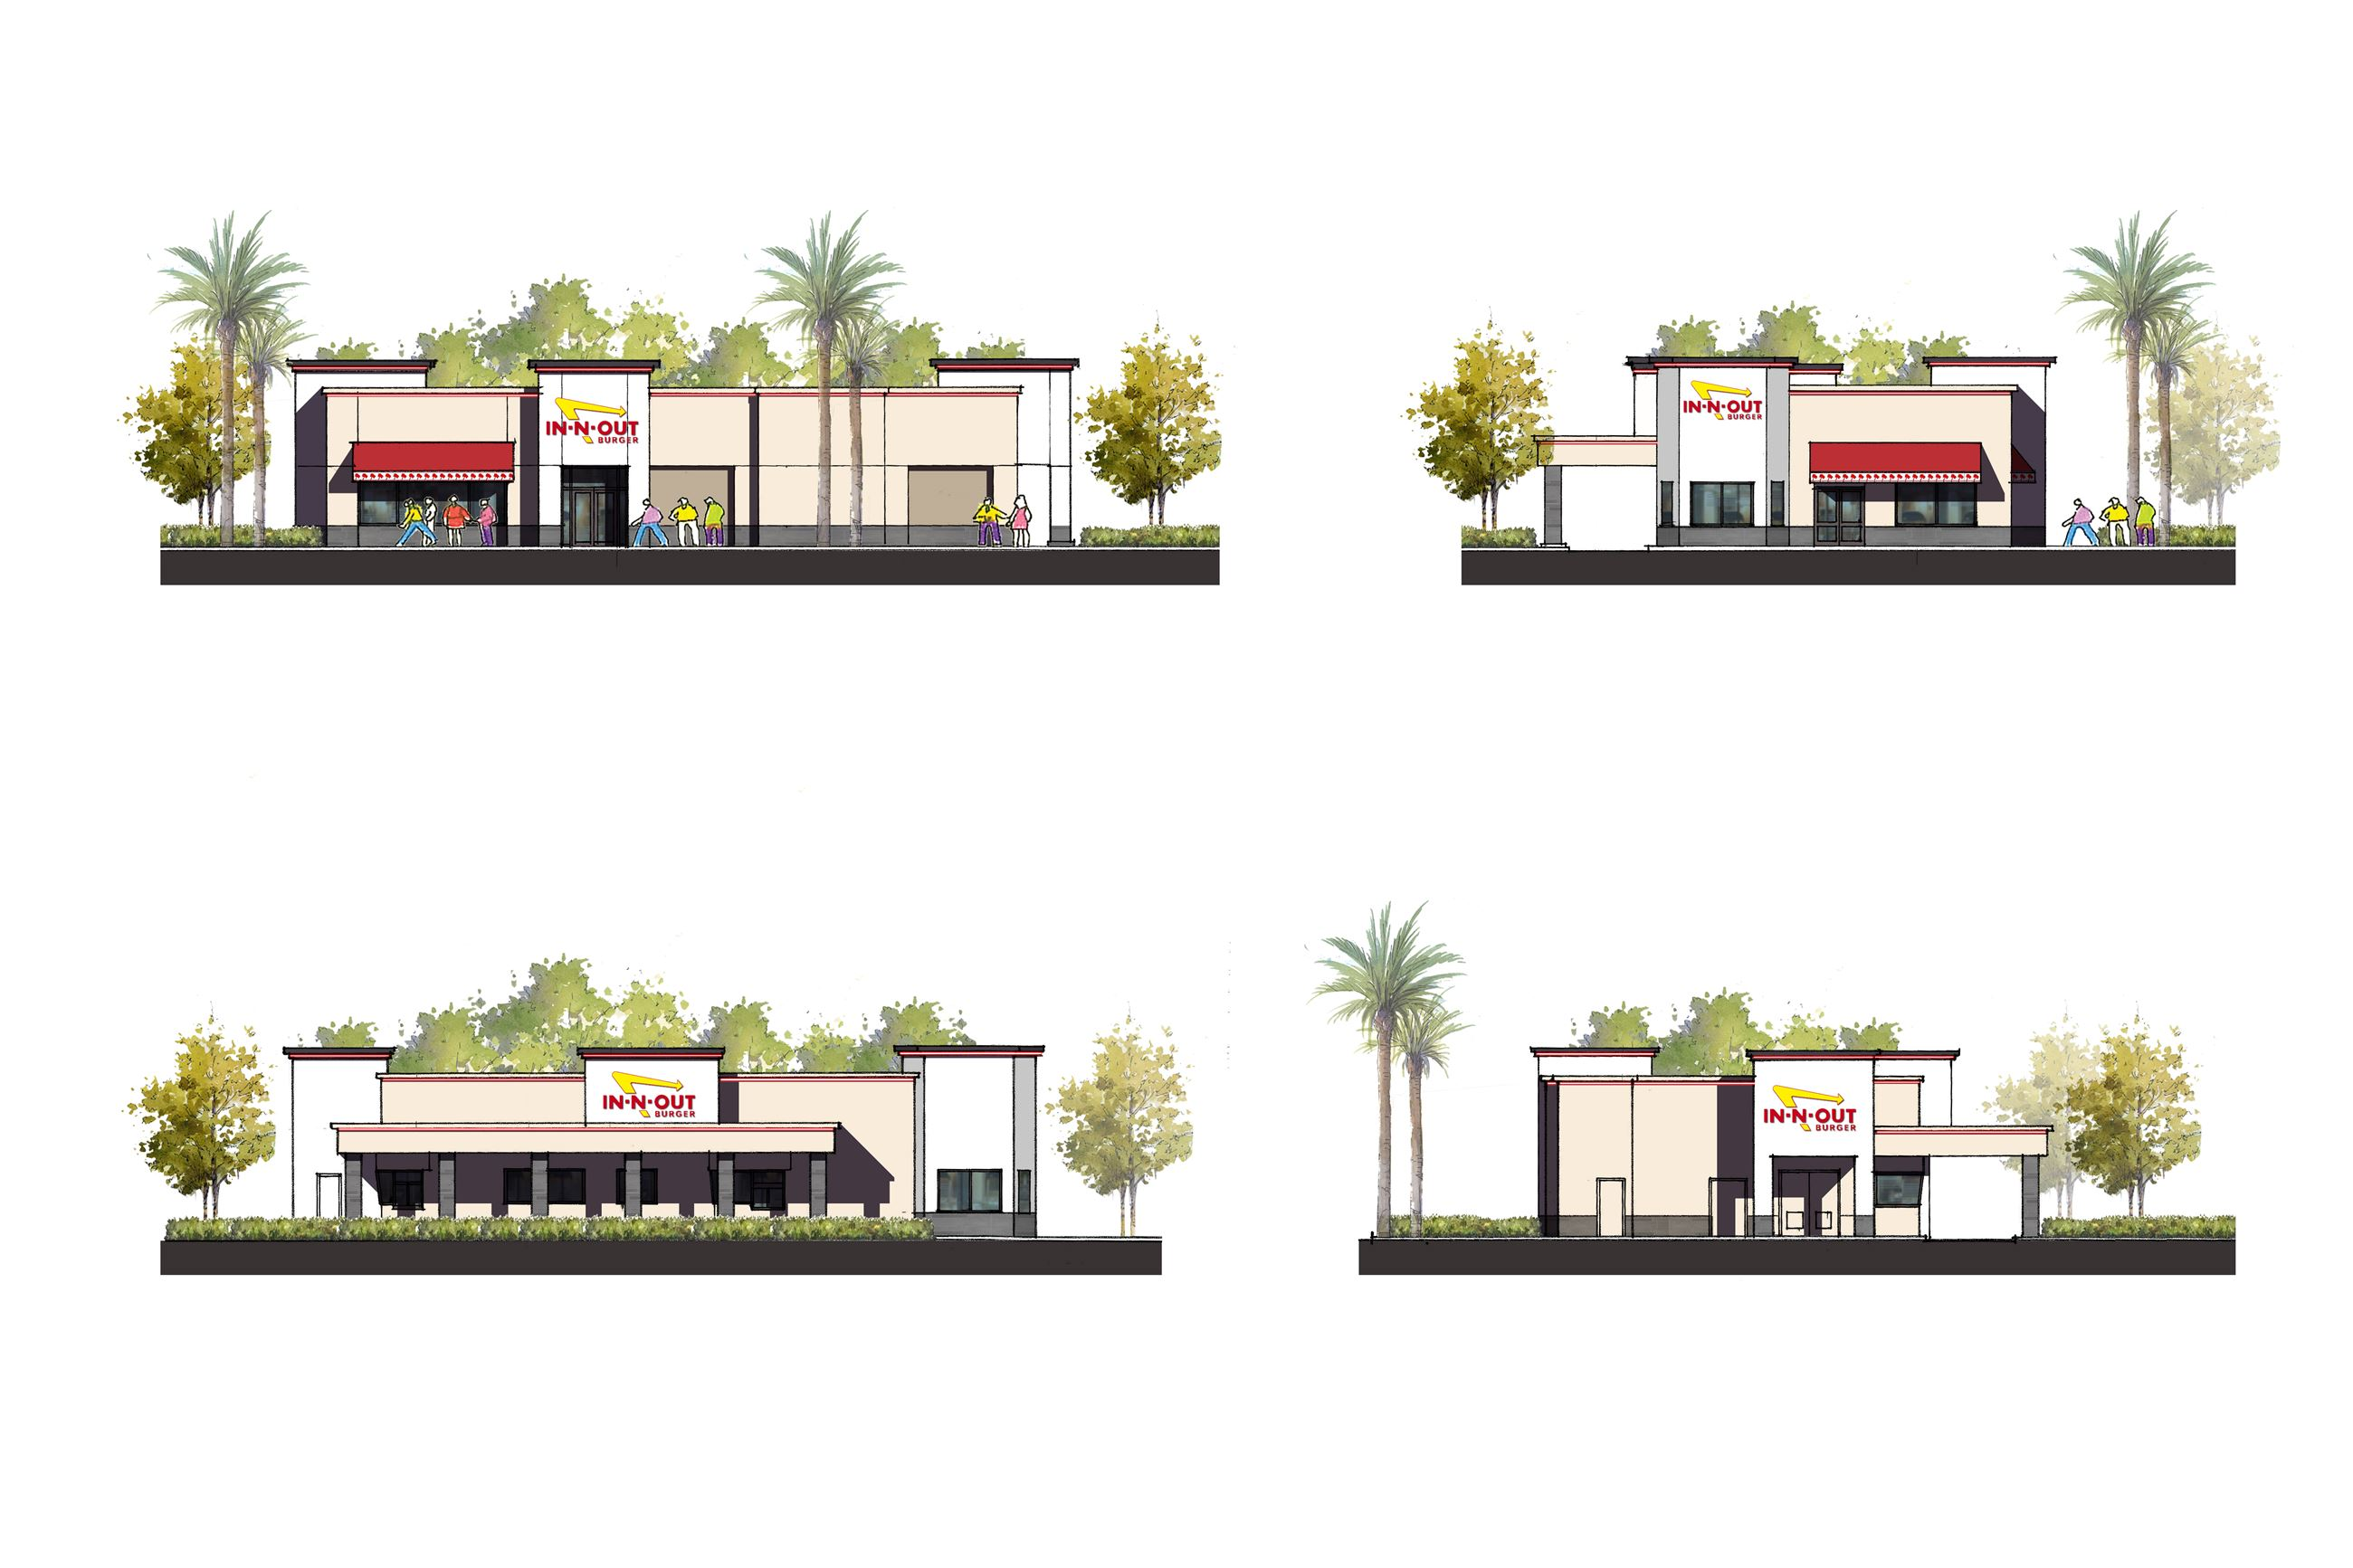 Monterey Park_Elevations_In-N-Out